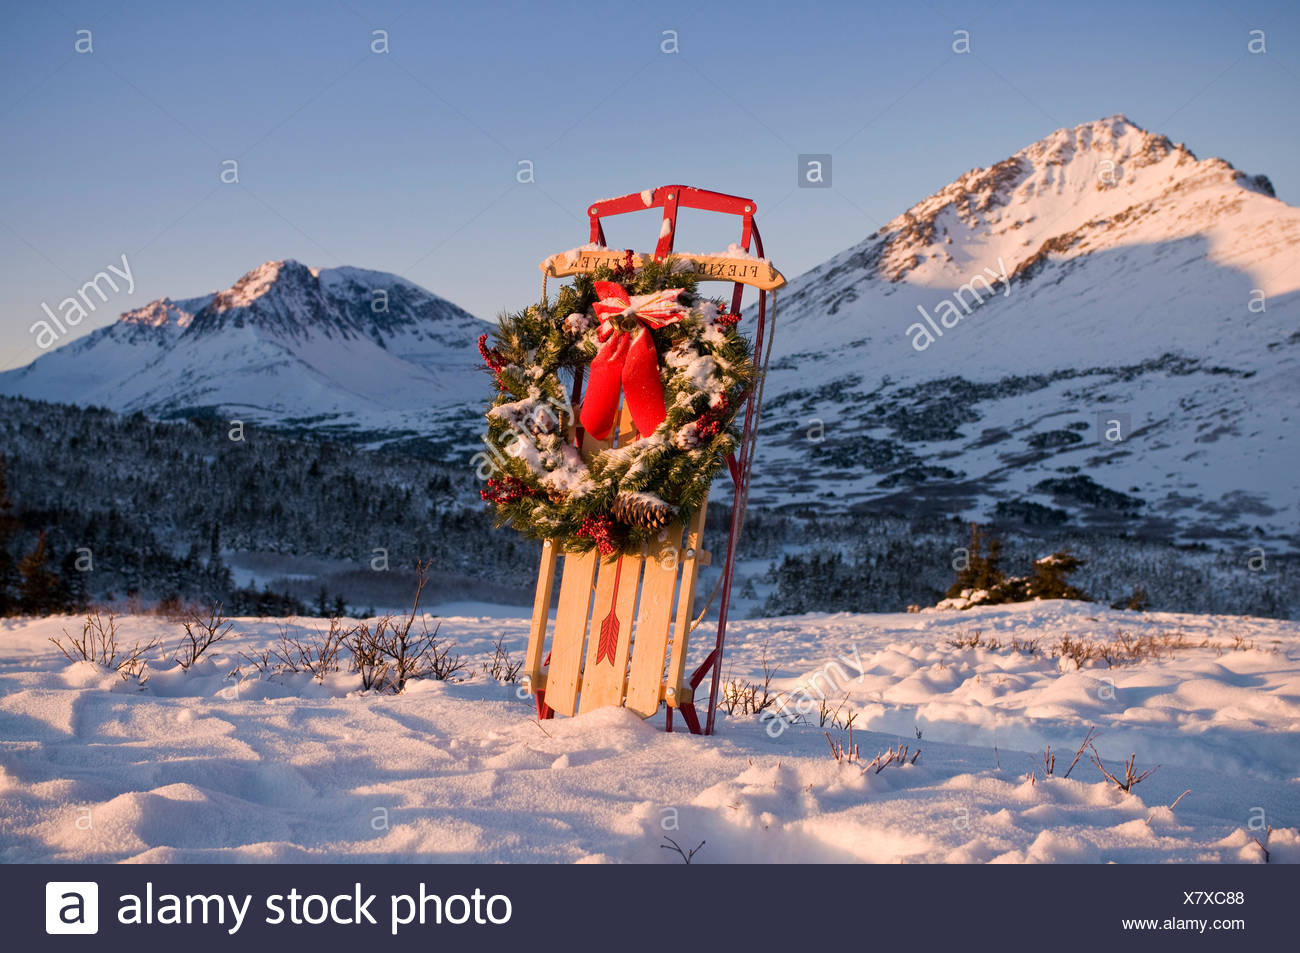 Christmas Wreath Hangs On A Flexible Flyer Sled Propped In A Snowbank In Chugach State Park, Alaska Stock Photo